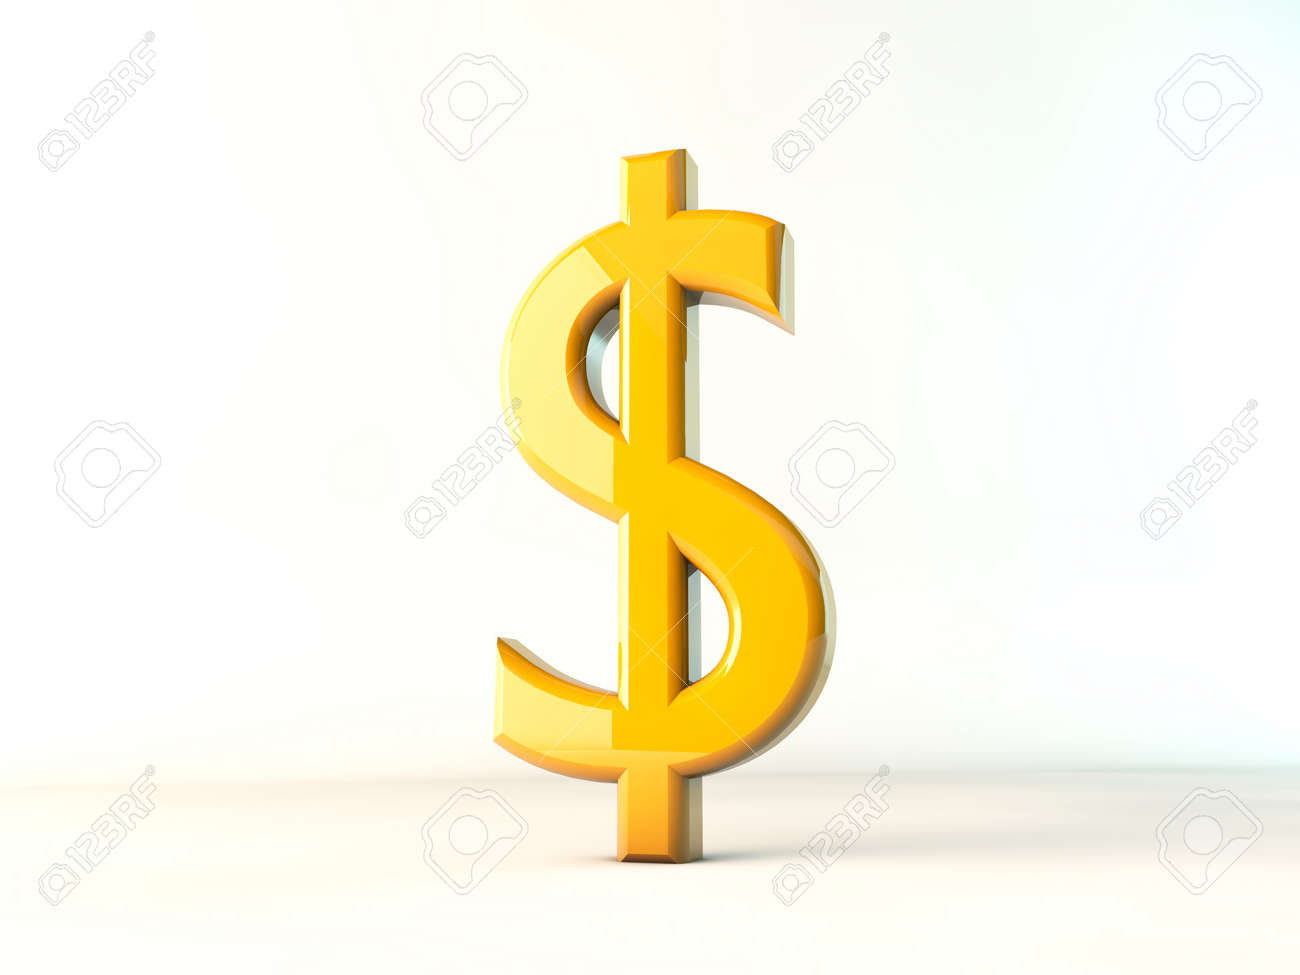 Currency symbols dollar stock photo picture and royalty free currency symbols dollar stock photo 17668818 biocorpaavc Choice Image